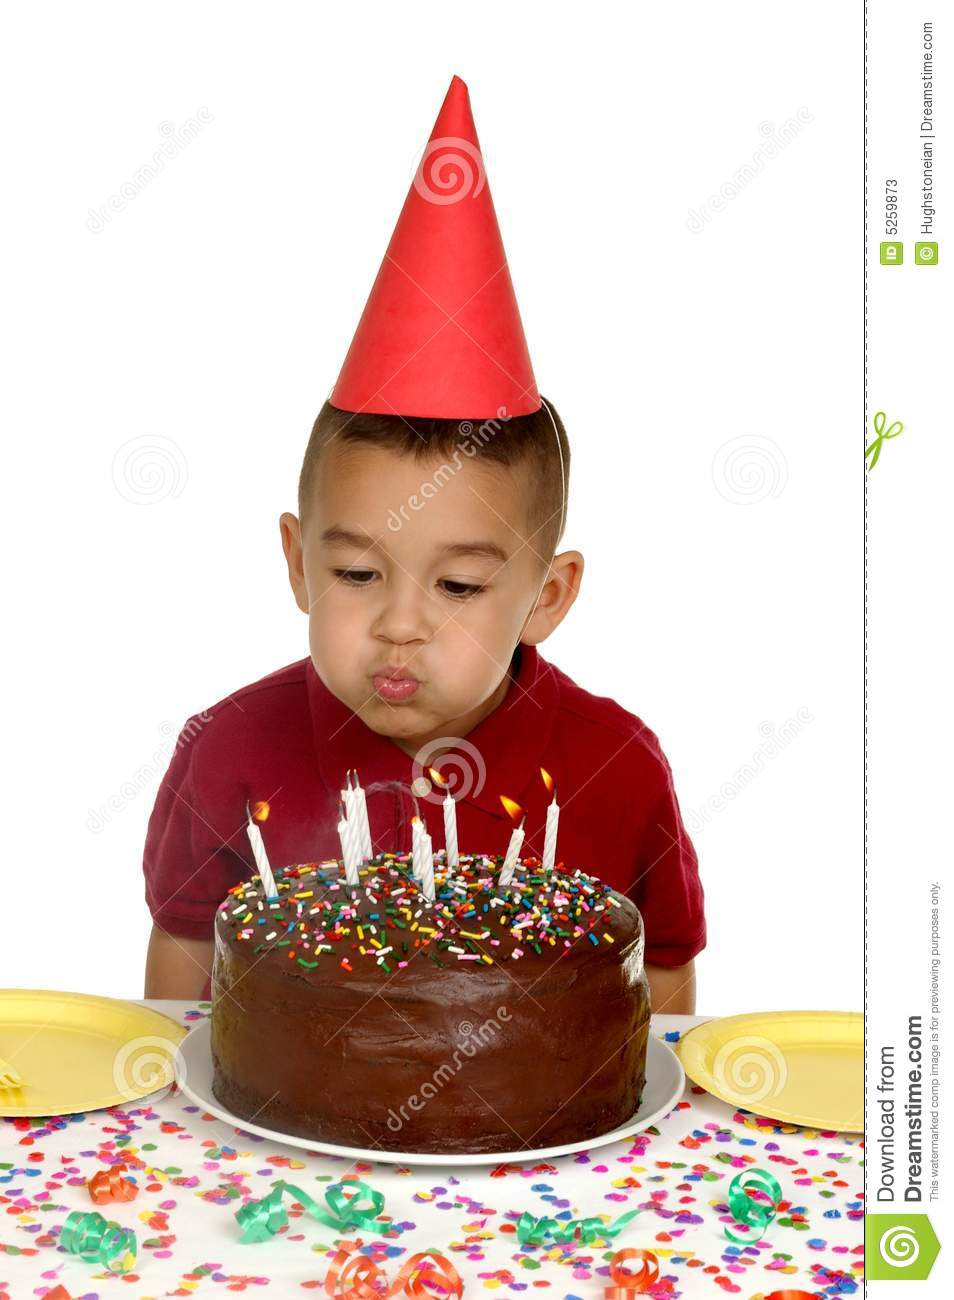 Blowing Out Candles 5 Years Stock Image Image Of